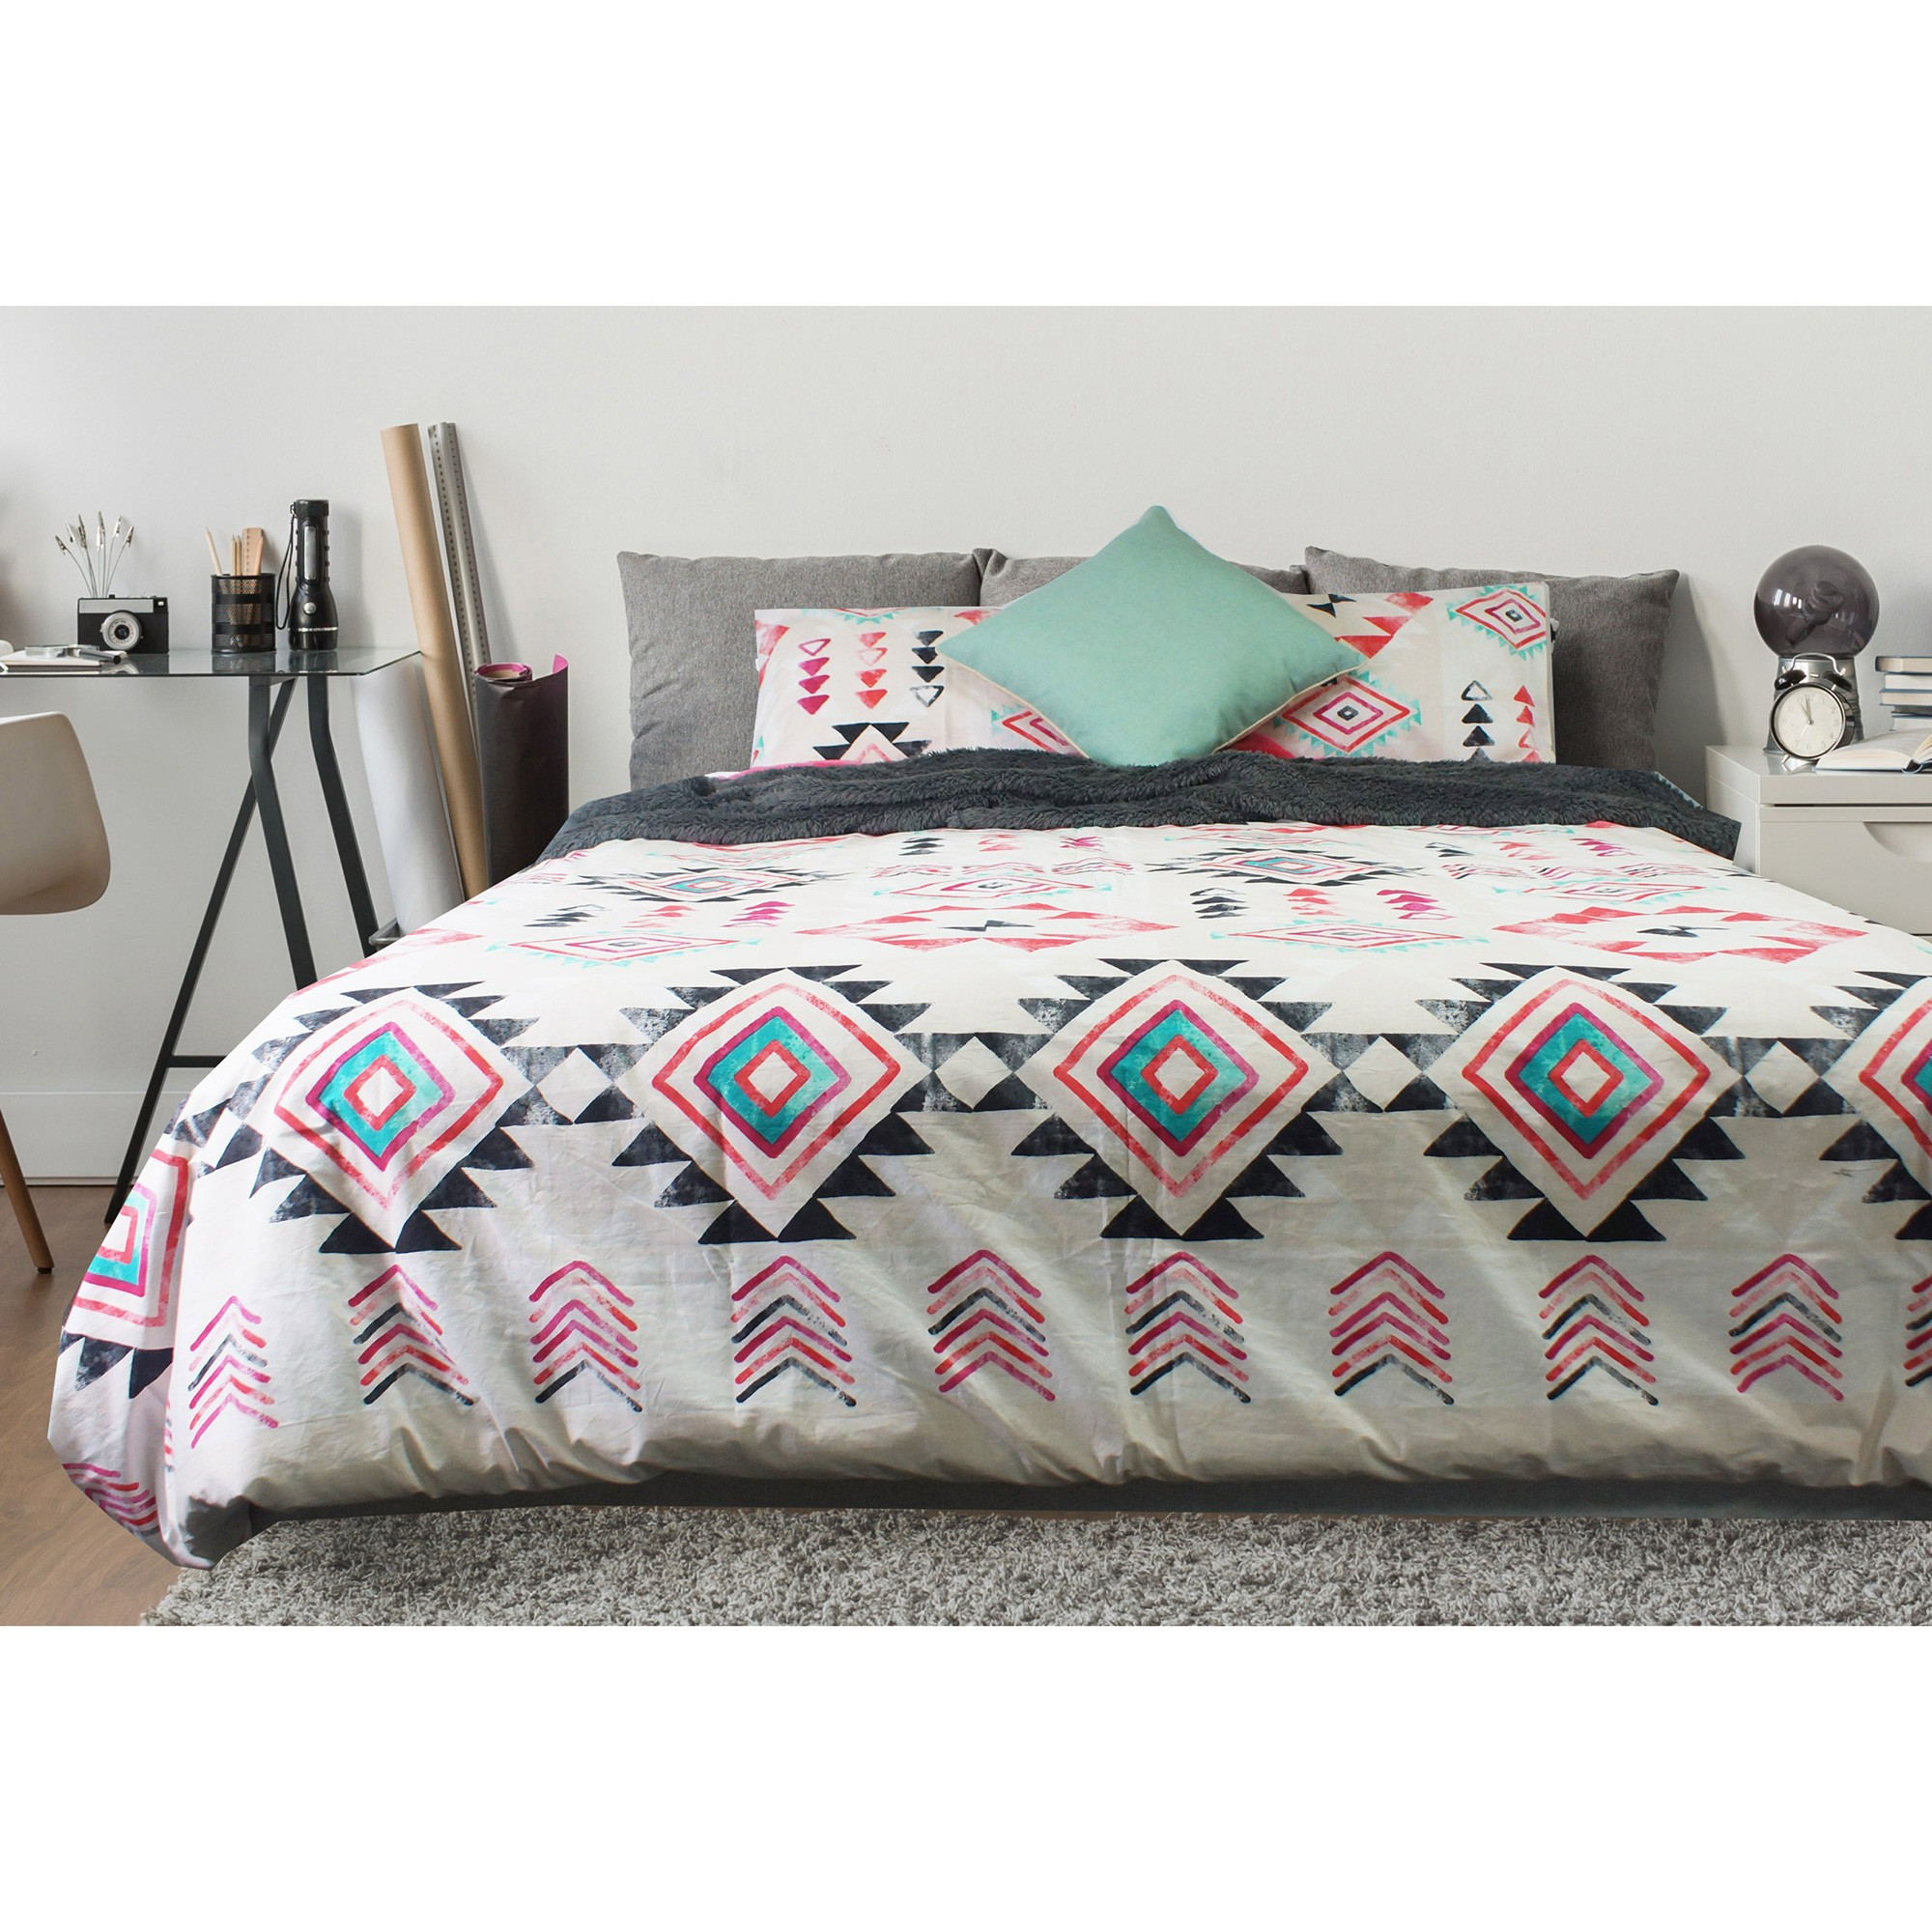 Odyssey Living Fiesta Cotton Quilt Cover Set, Single